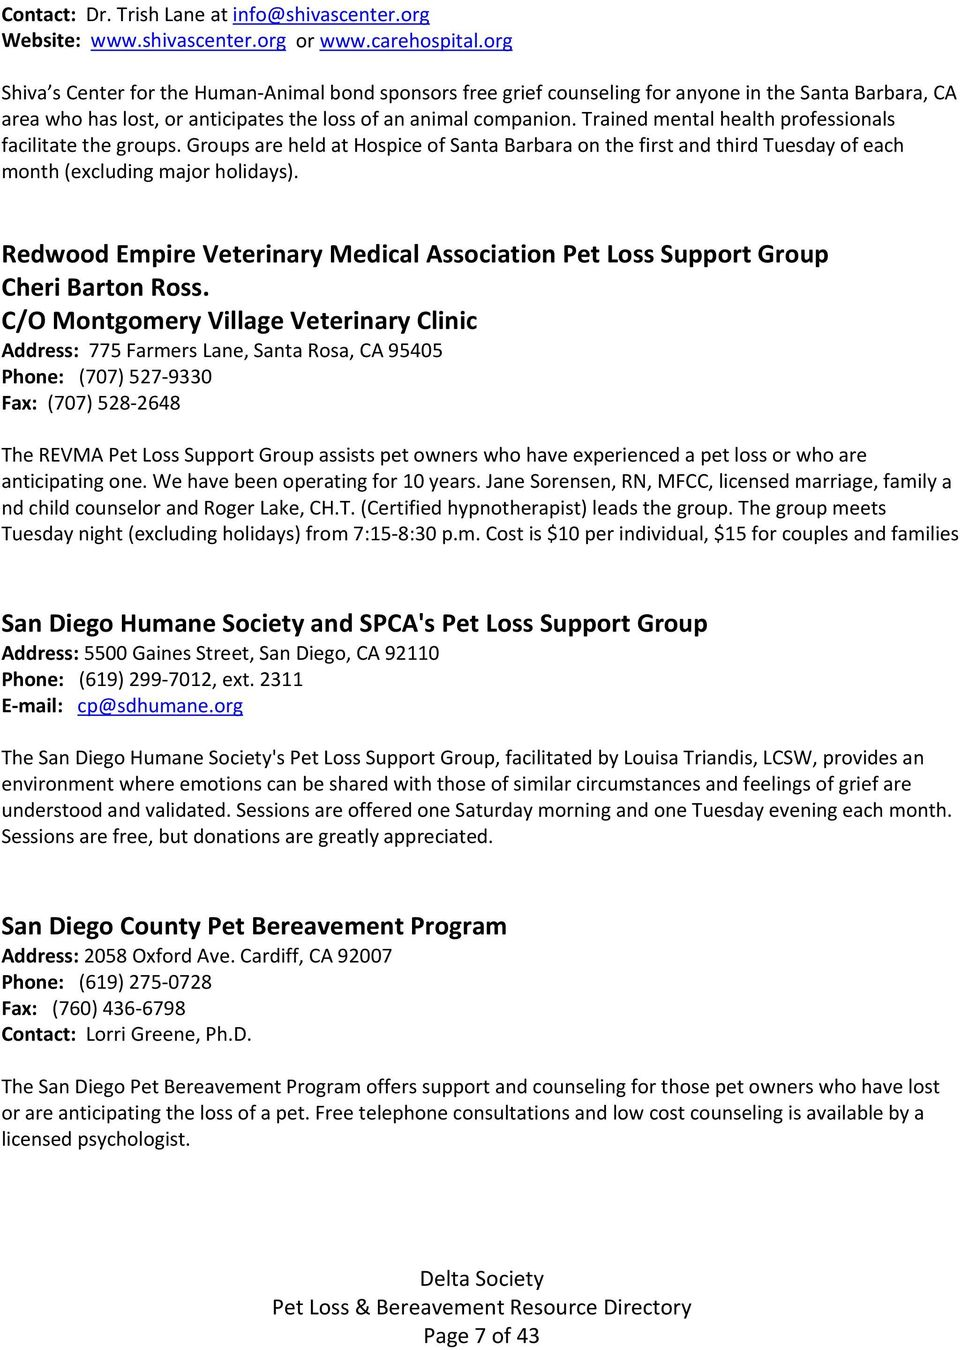 Pet Loss Bereavement Directory Counselors Support Groups Pdf